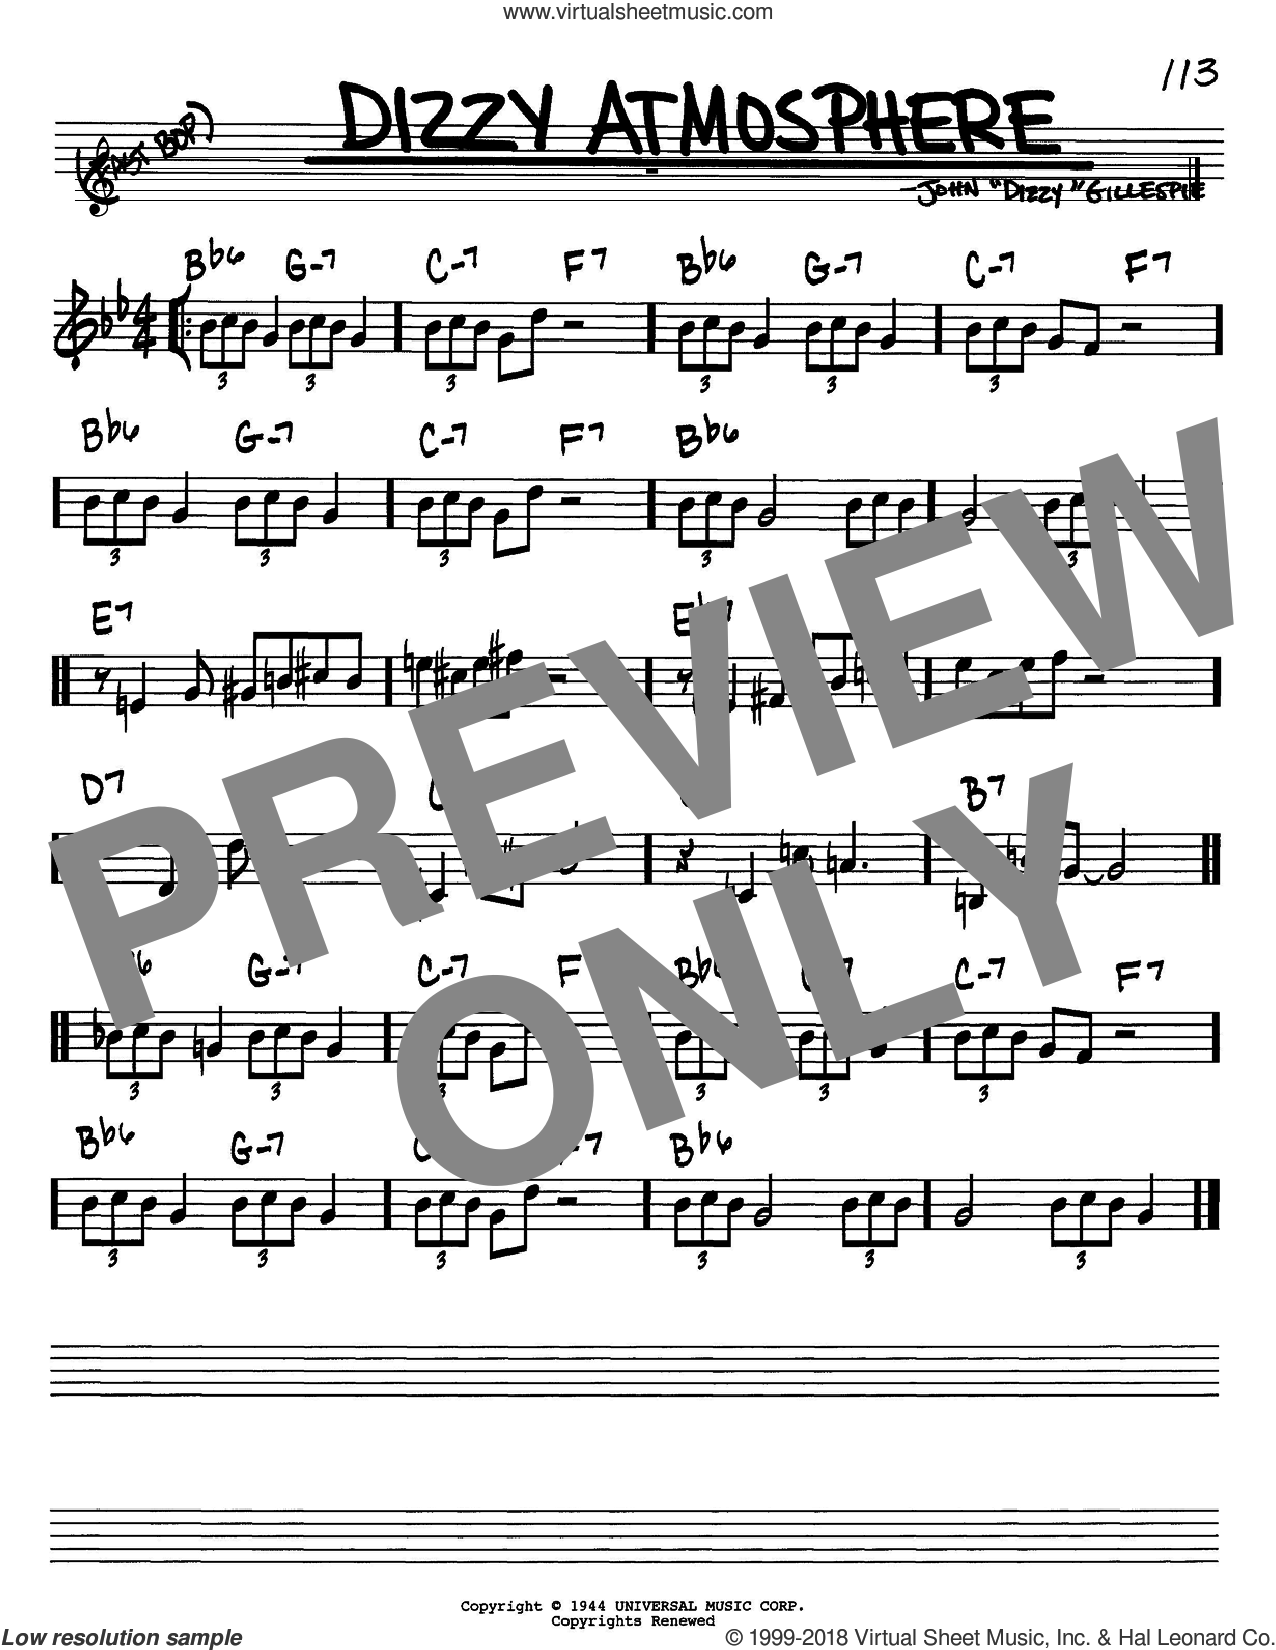 Dizzy Atmosphere sheet music for voice and other instruments (Bb) by Dizzy Gillespie